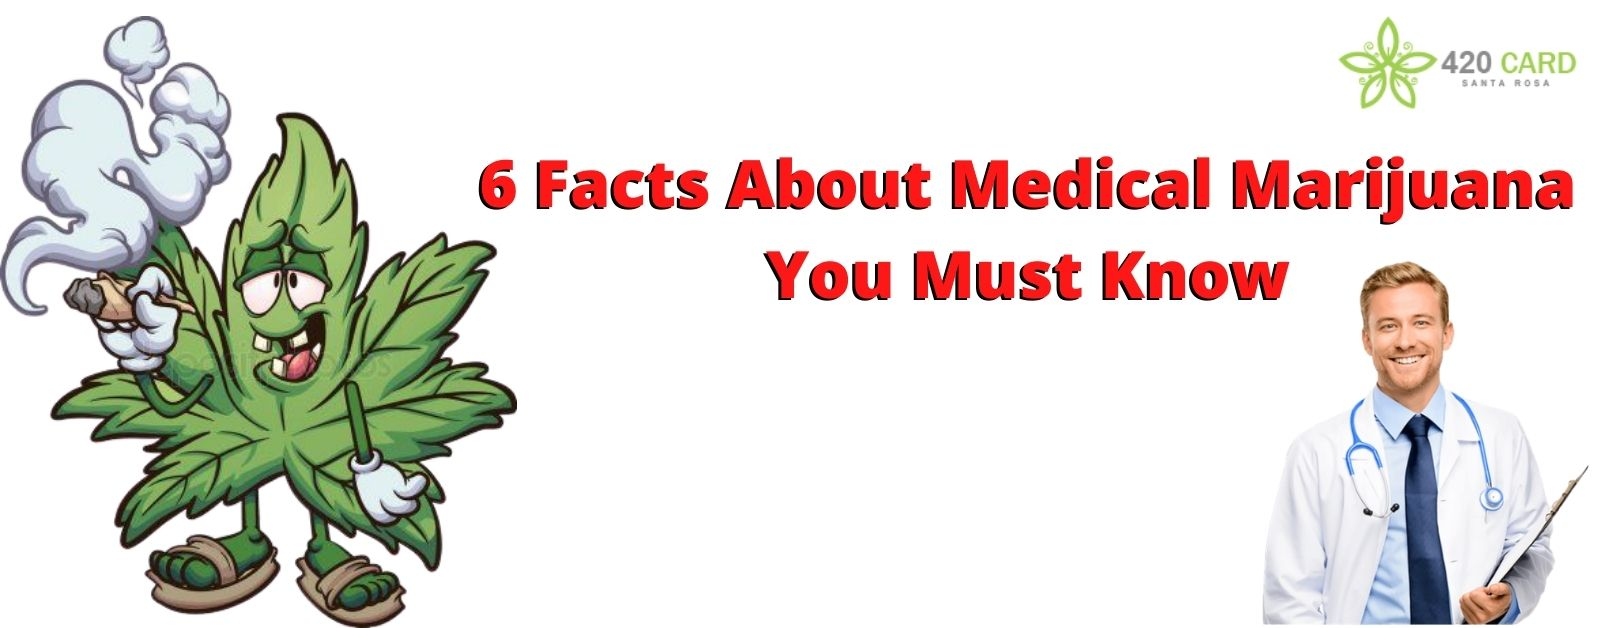 6 Facts About Medical Marijuana You Must Know